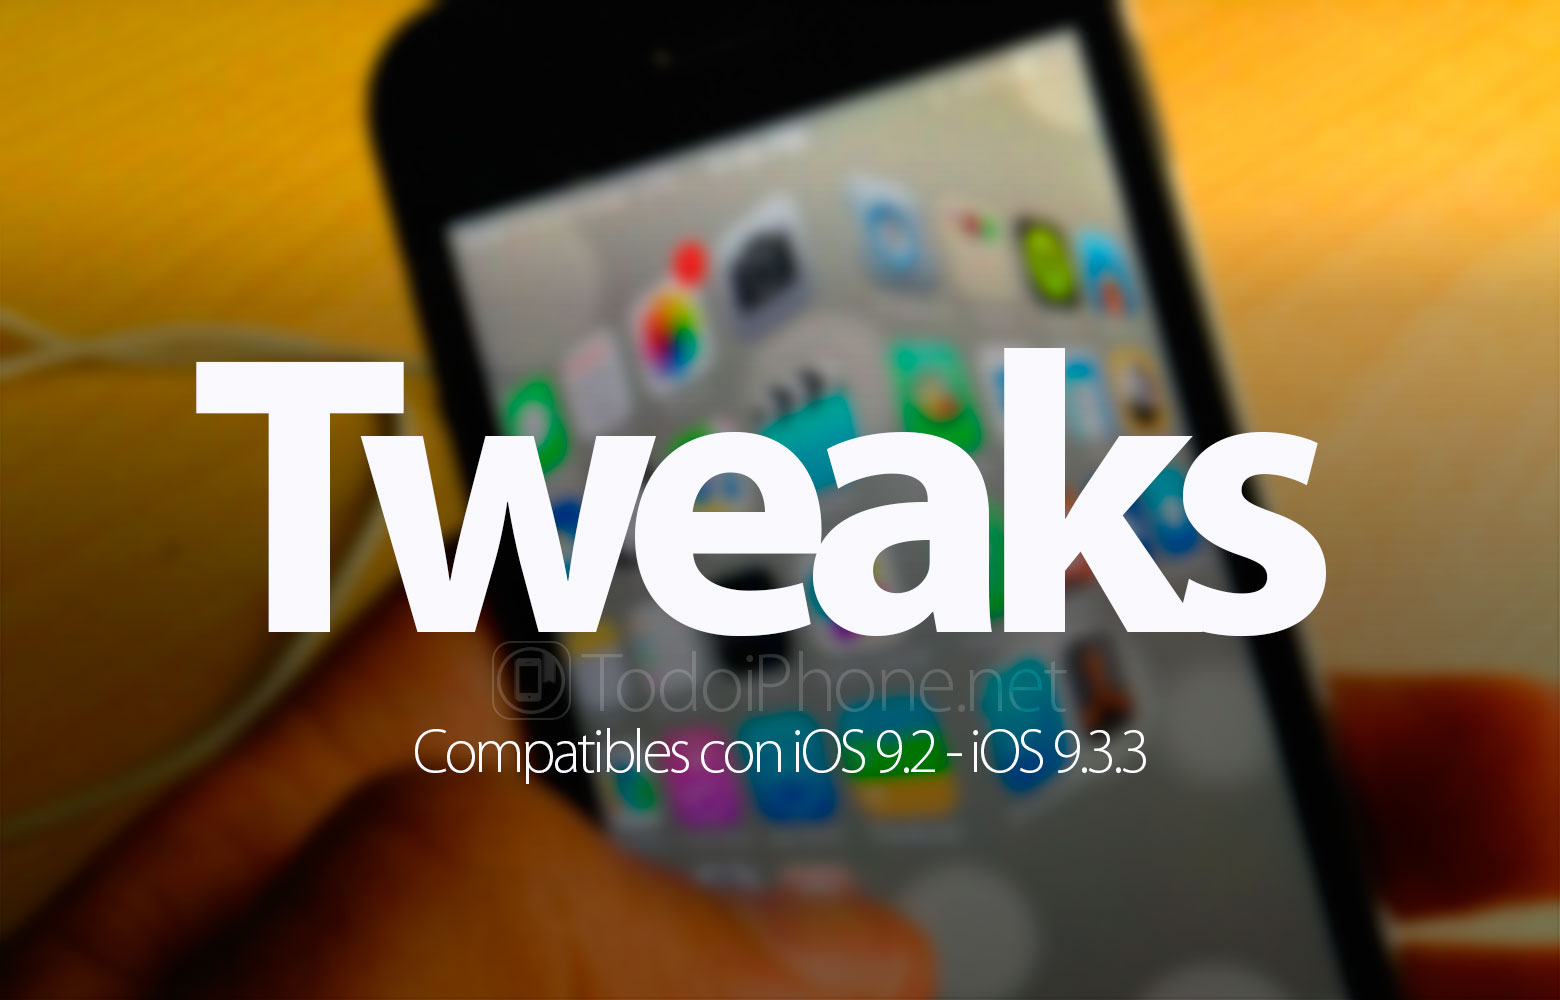 tweaks-compatibles-jailbreak-ios-9-2-9-3-3